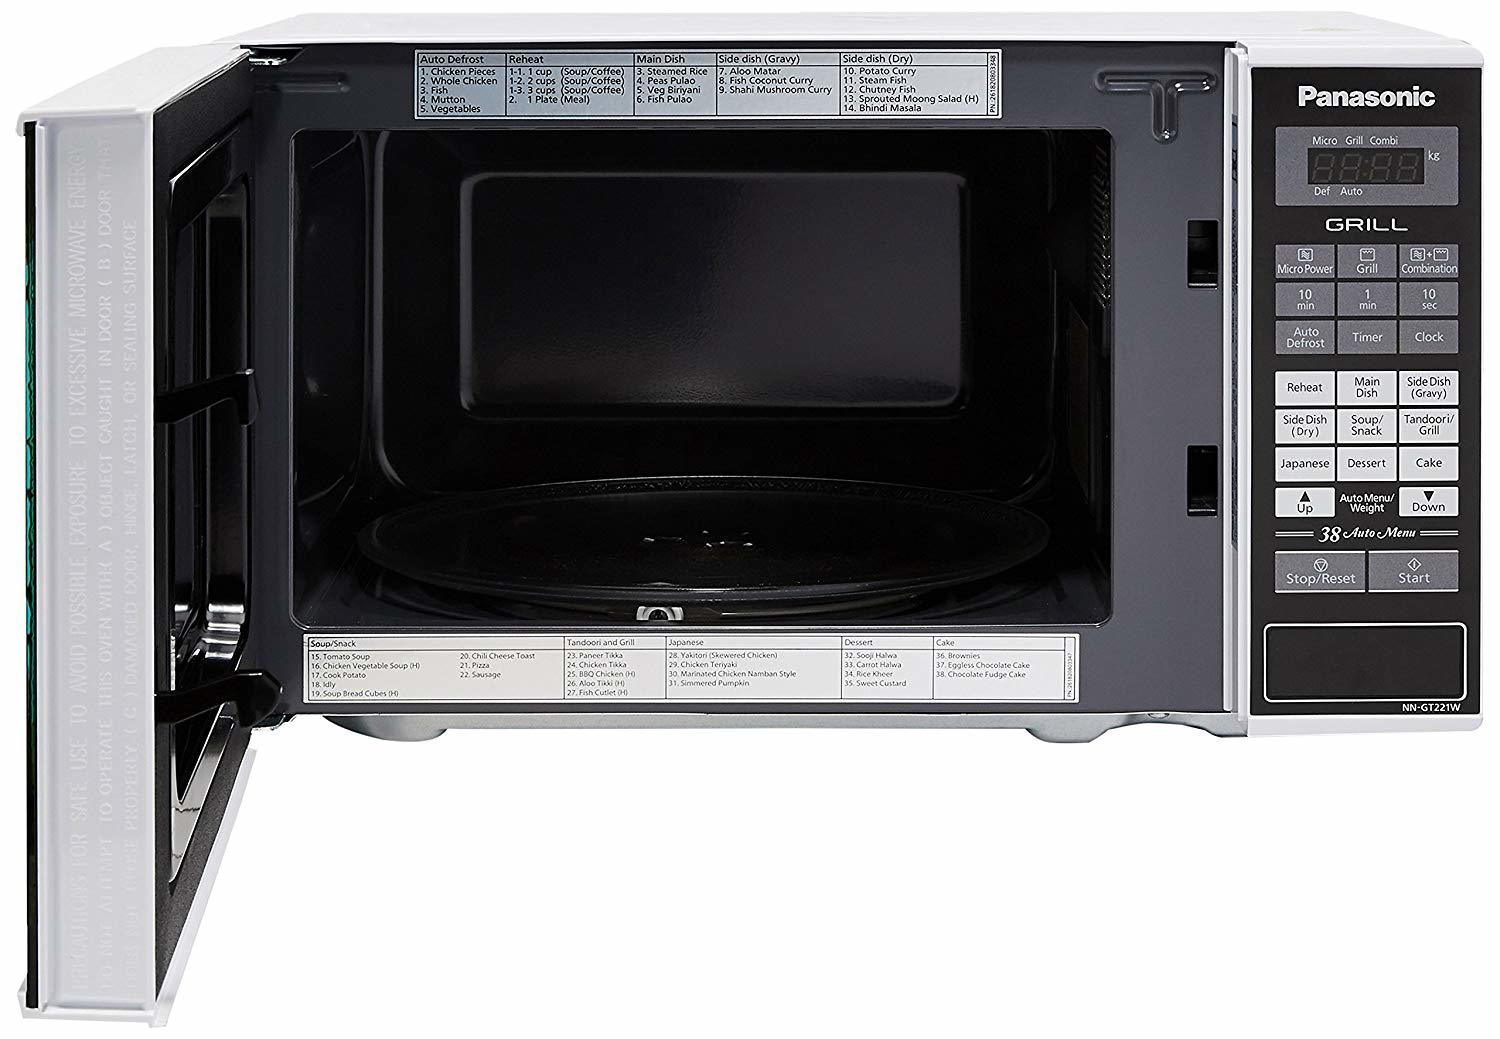 Panasonic 20 L Grill Microwave Oven (NN-GT221WF, White)